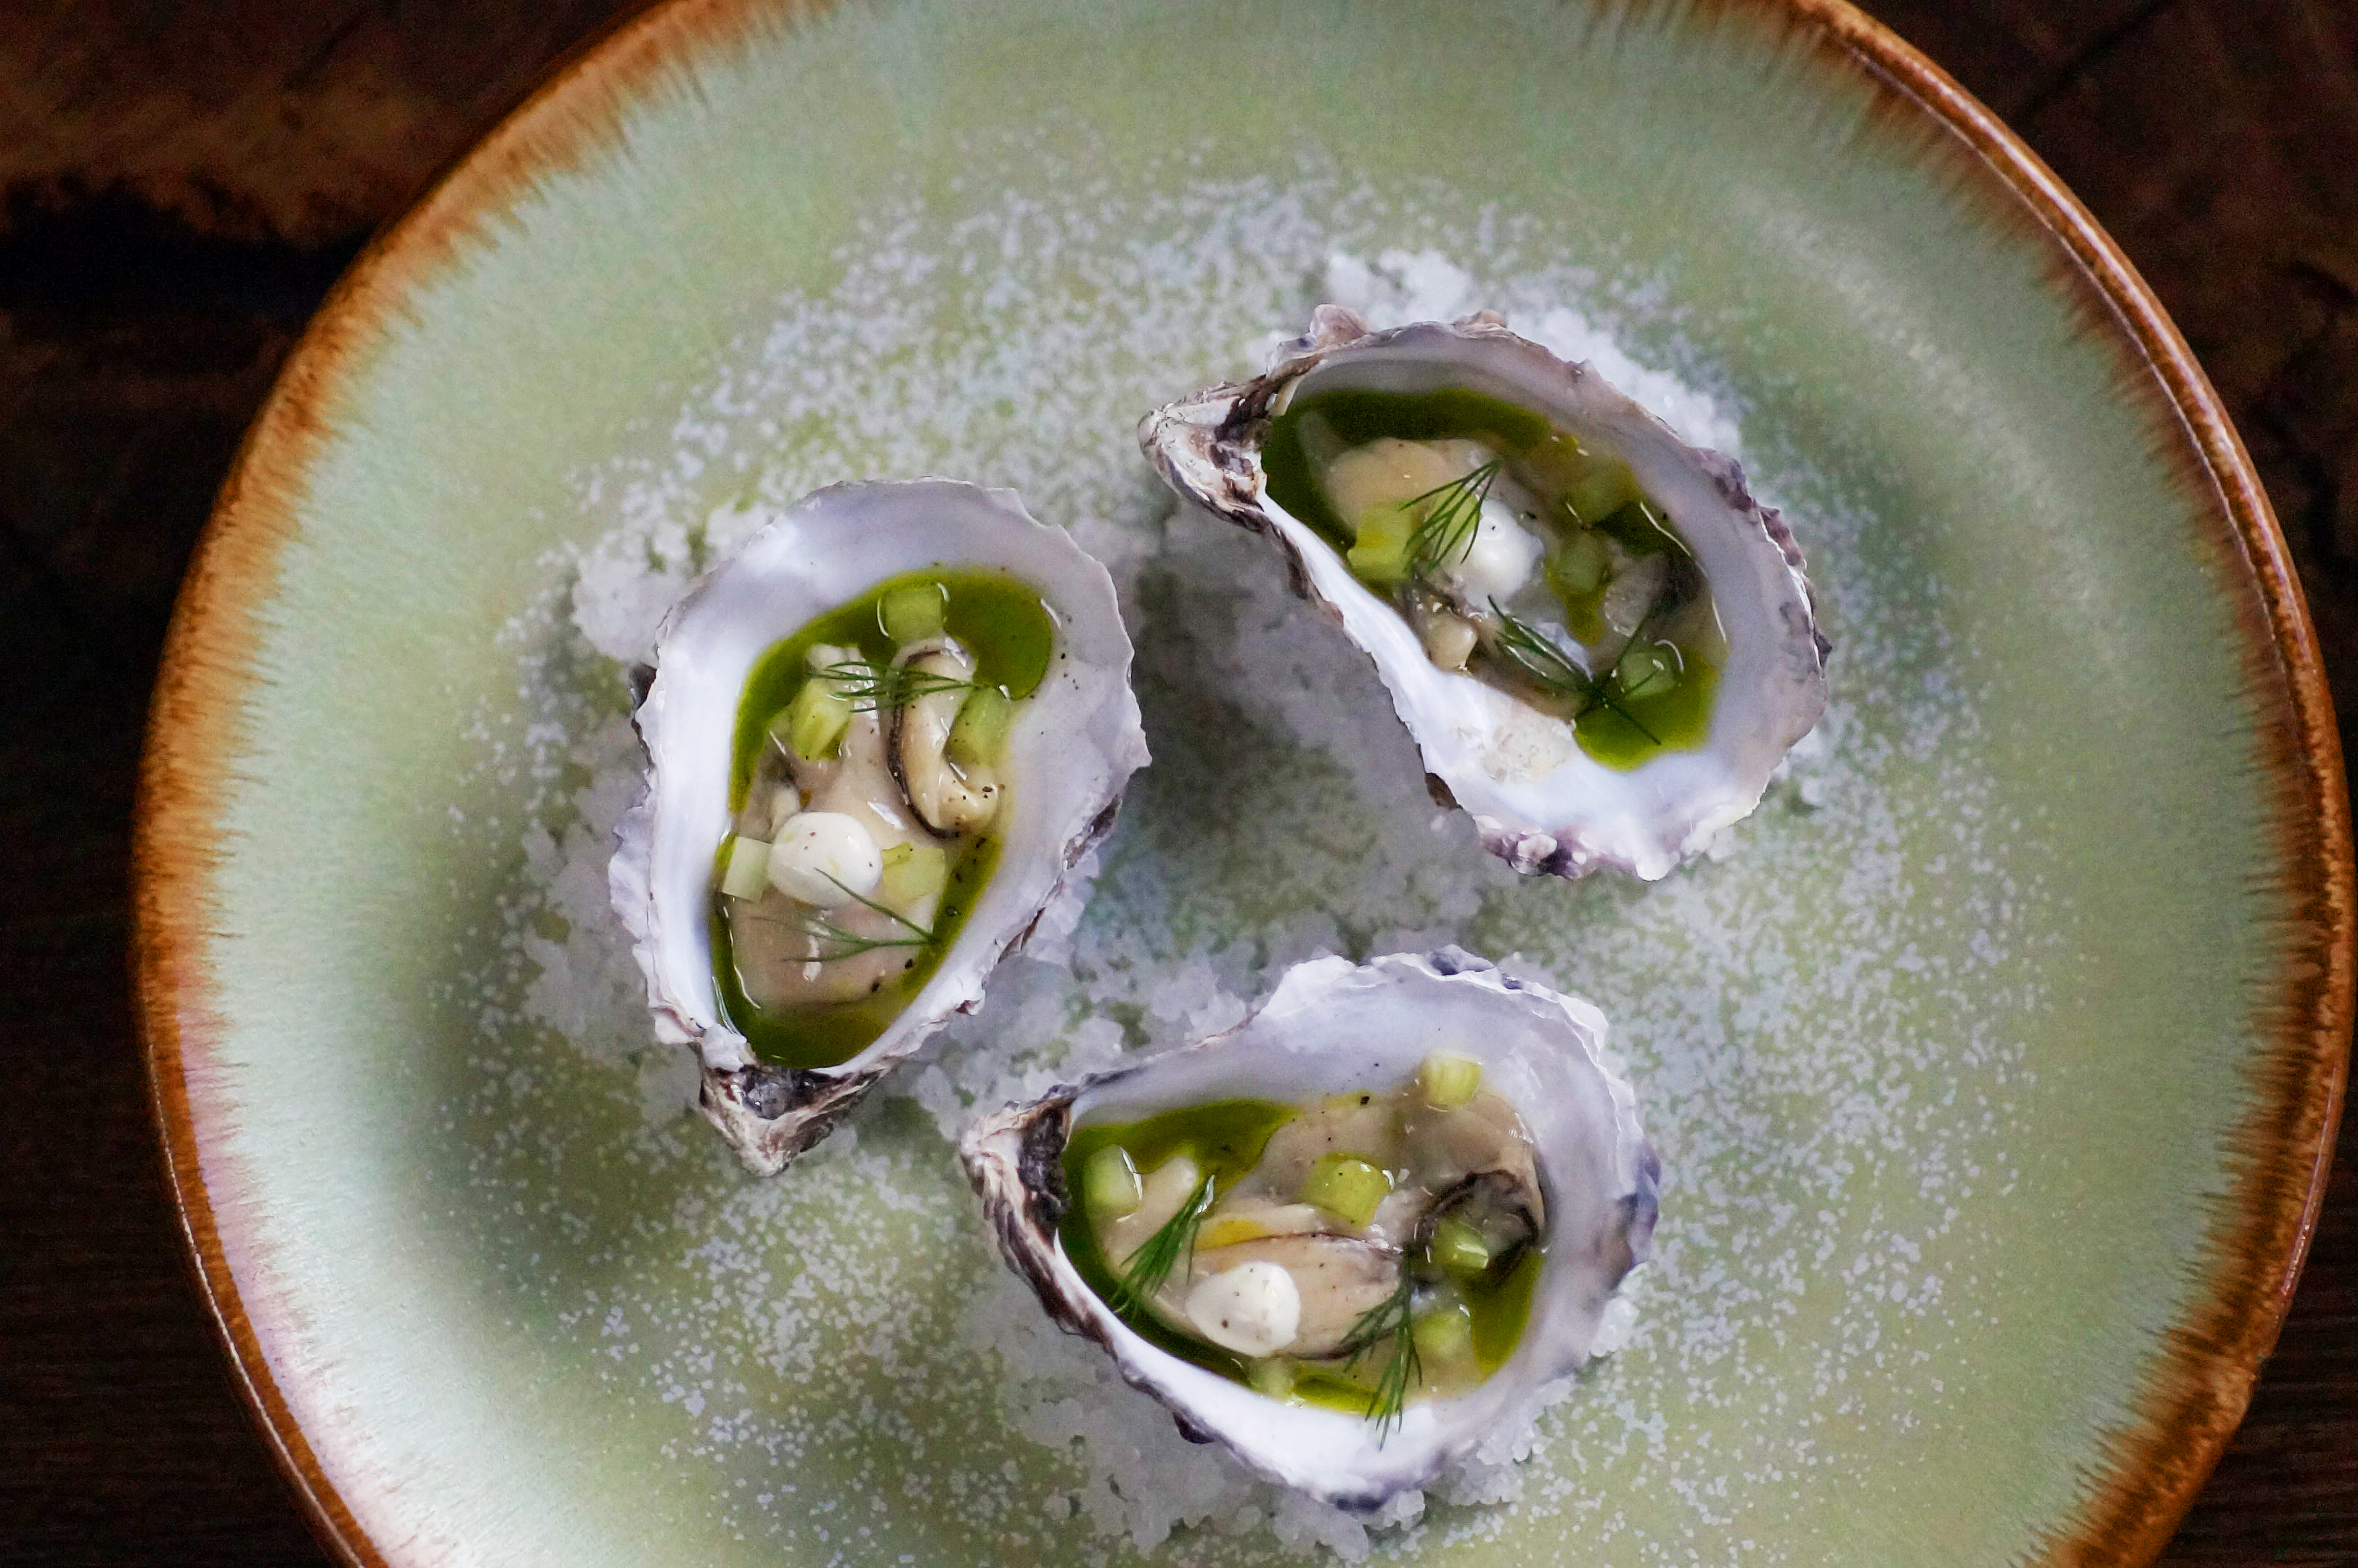 4 Celebrity Chef London Restaurants You Must Try Now - Tom Brown's Cornerstone in Hackney Wick: Pickled Oysters with Celery, Horseradish & Dill